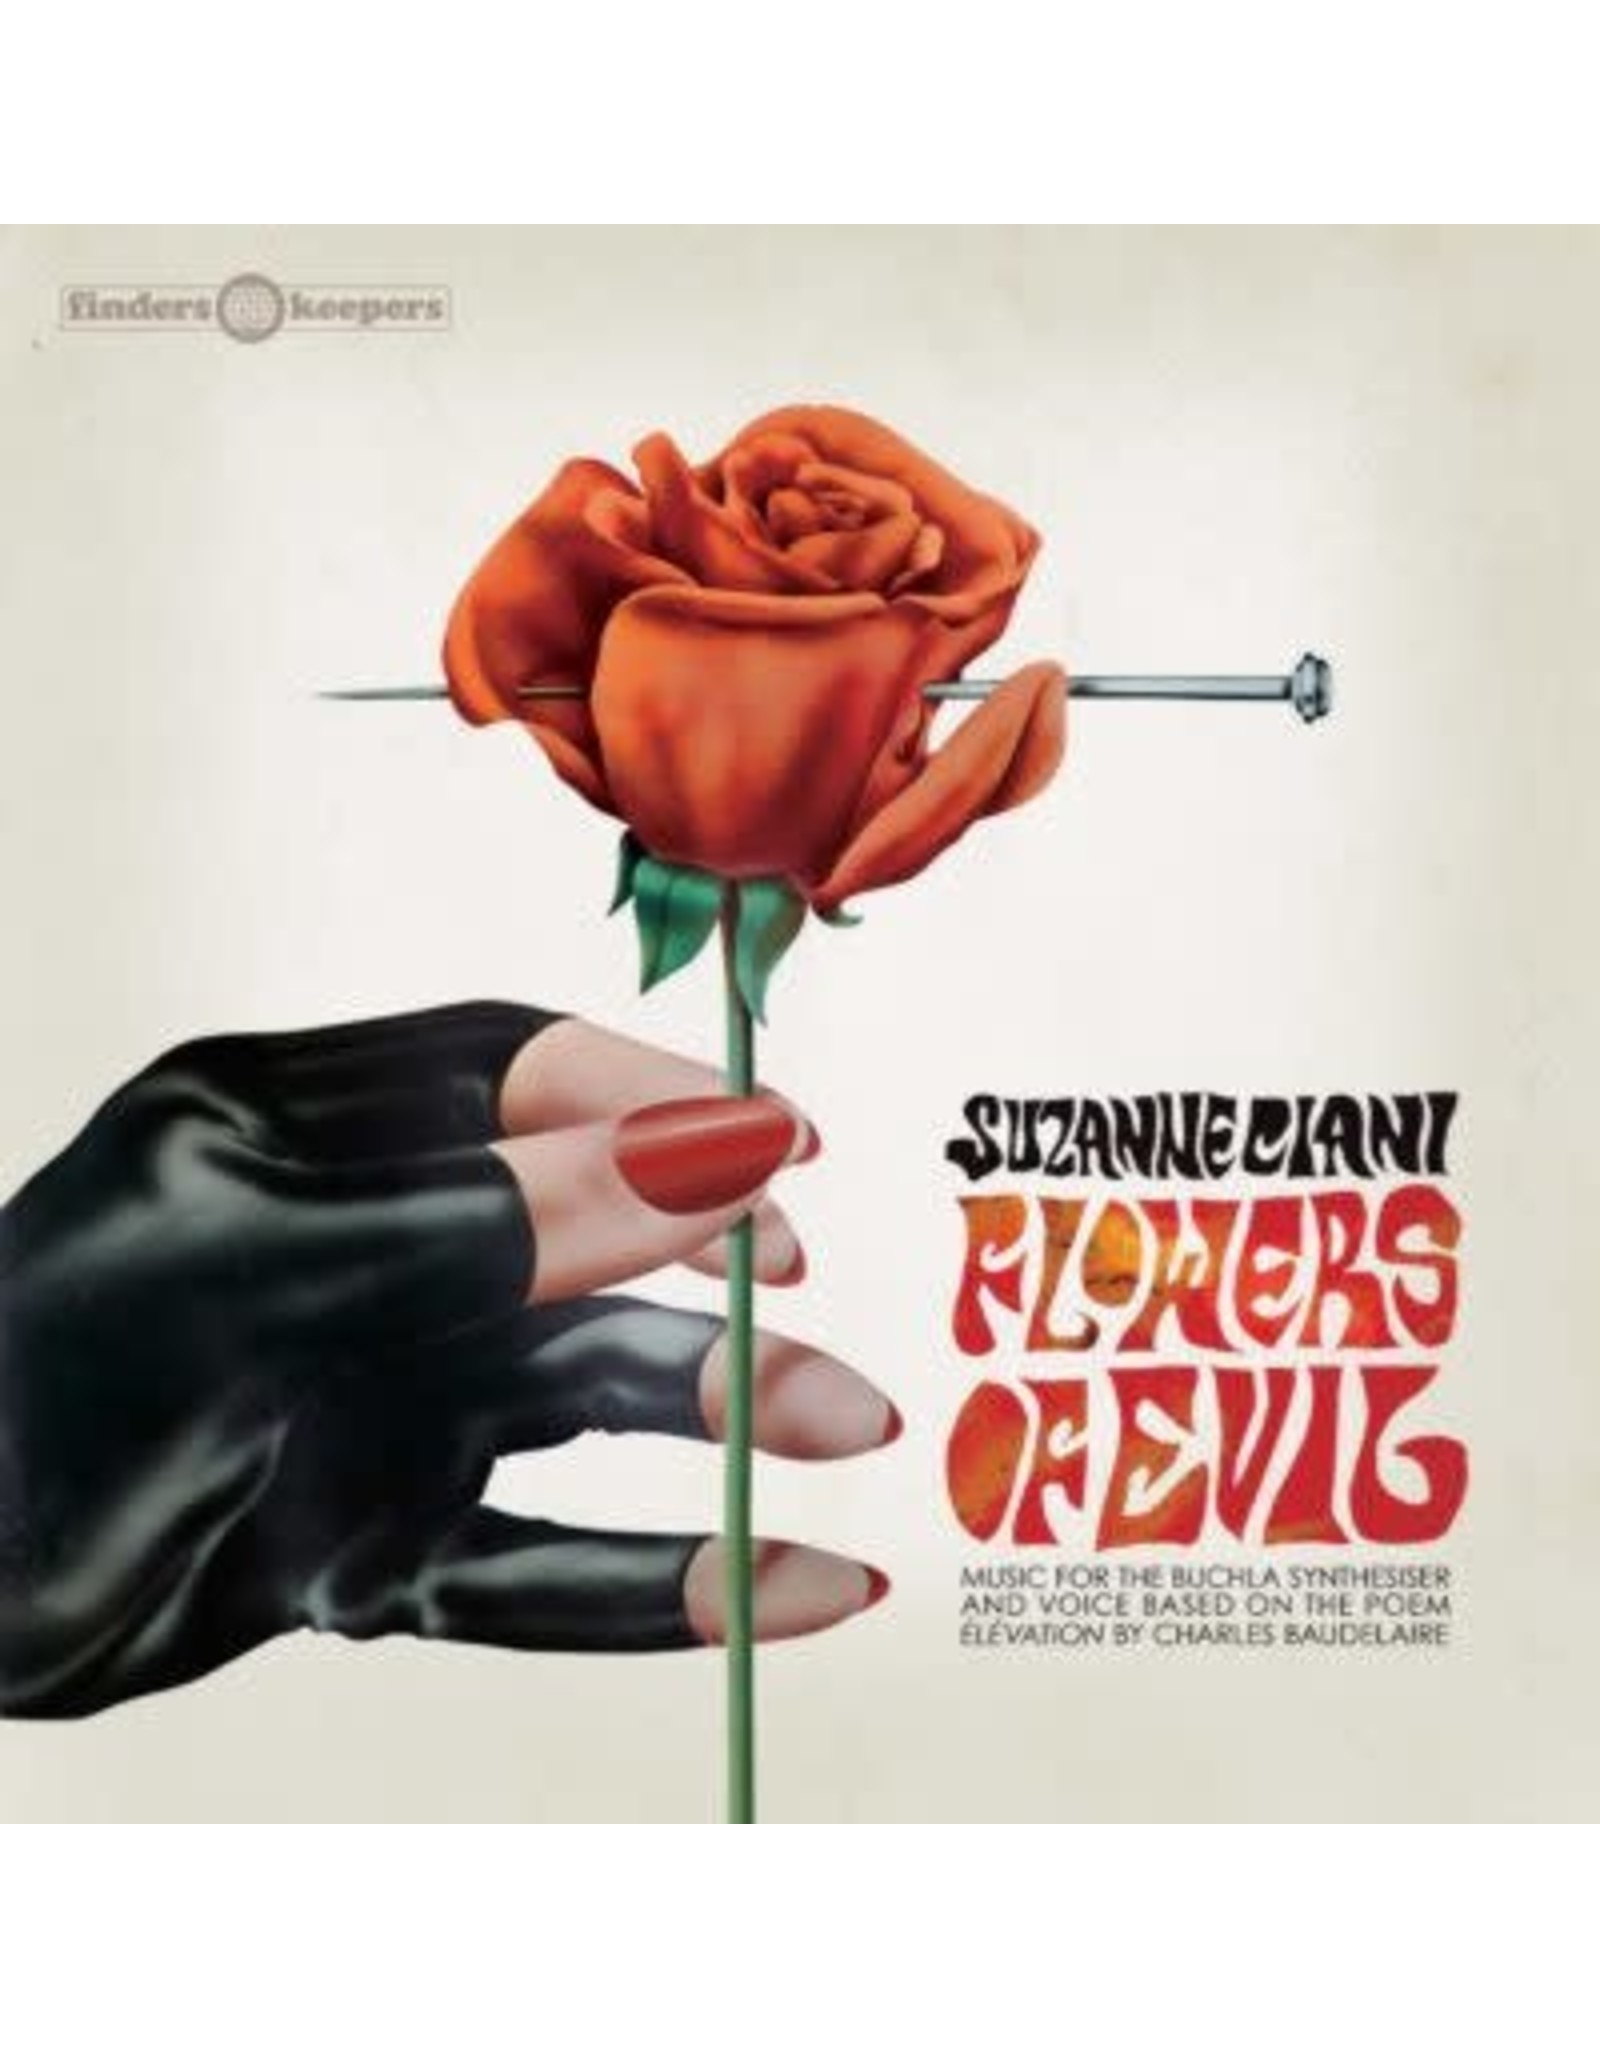 Finders Keepers Ciani, Suzanne: Flowers of Evil LP